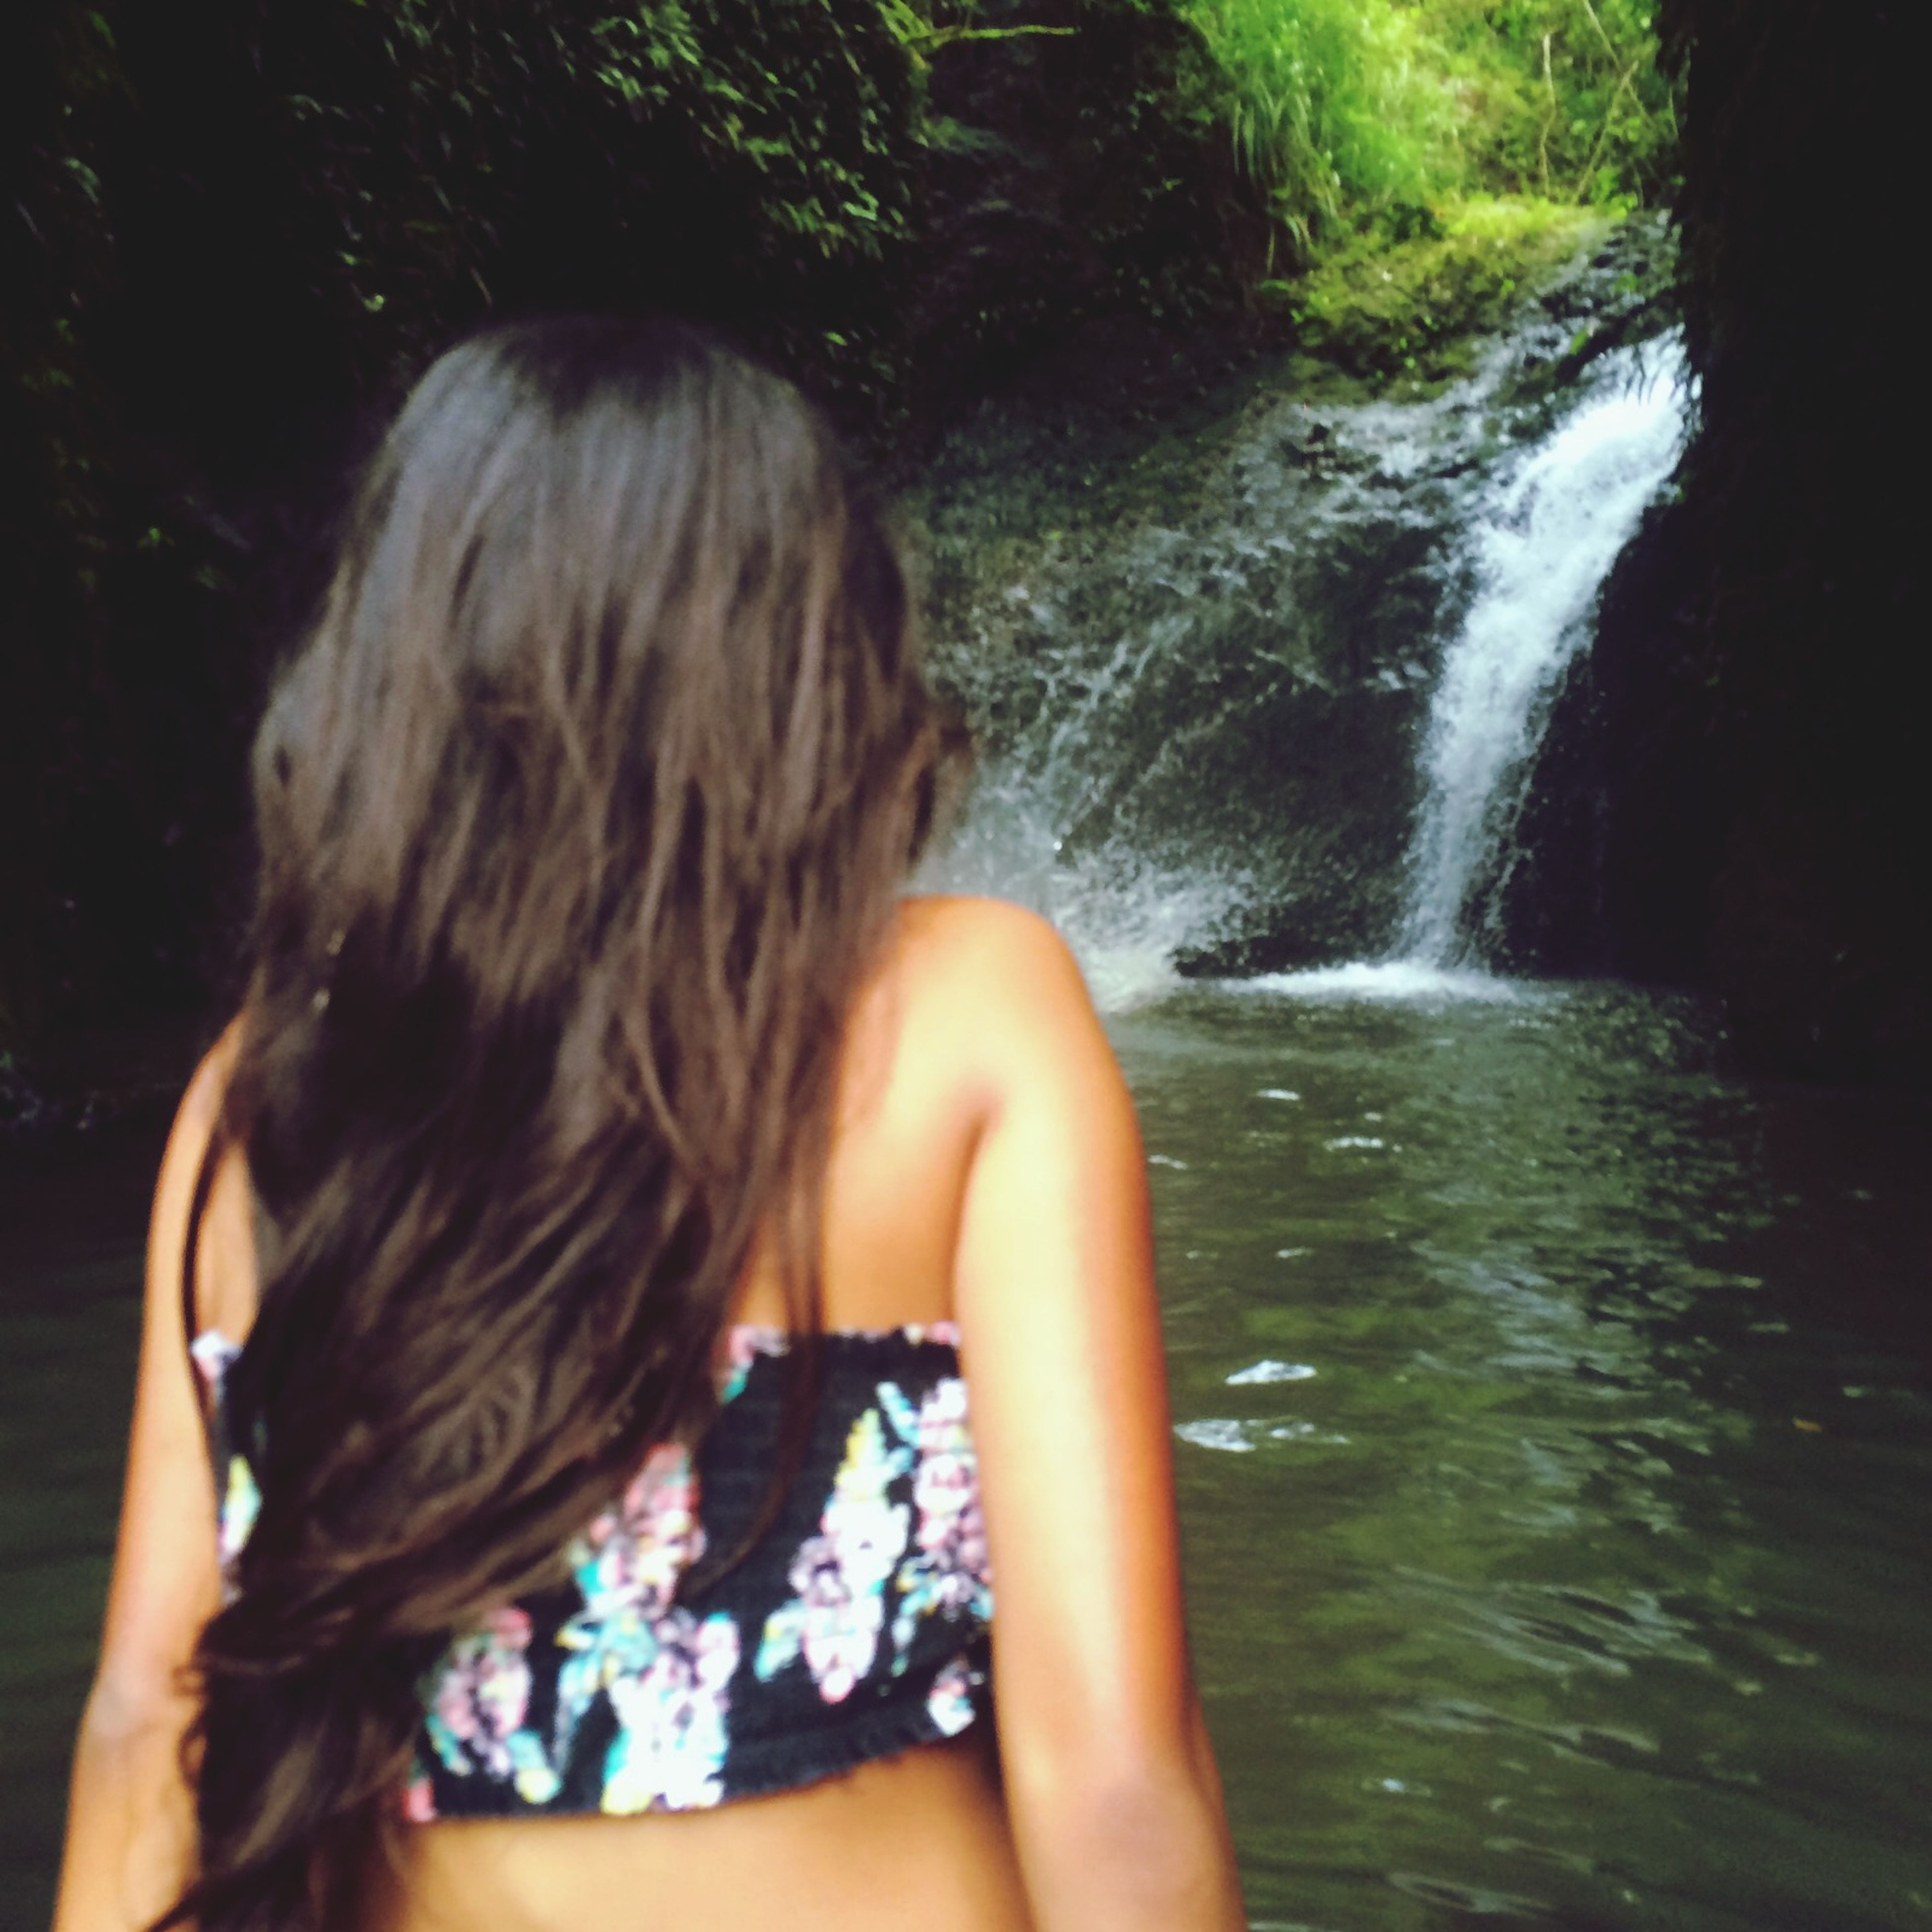 water, lifestyles, long hair, leisure activity, young adult, young women, person, motion, splashing, waterfall, rear view, headshot, flowing water, long exposure, blond hair, nature, brown hair